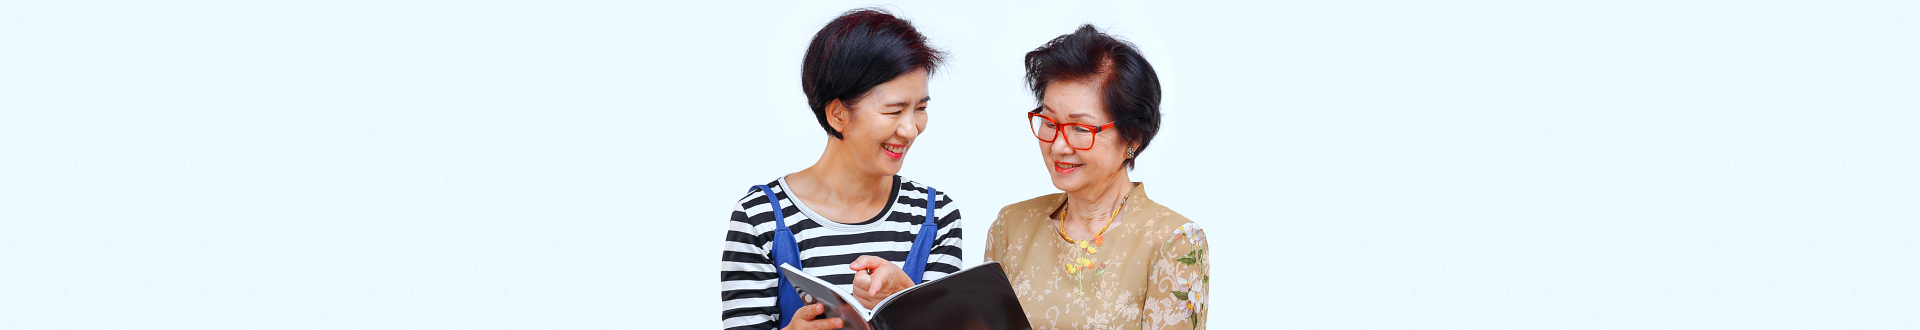 senior woman and caregiver reading a book